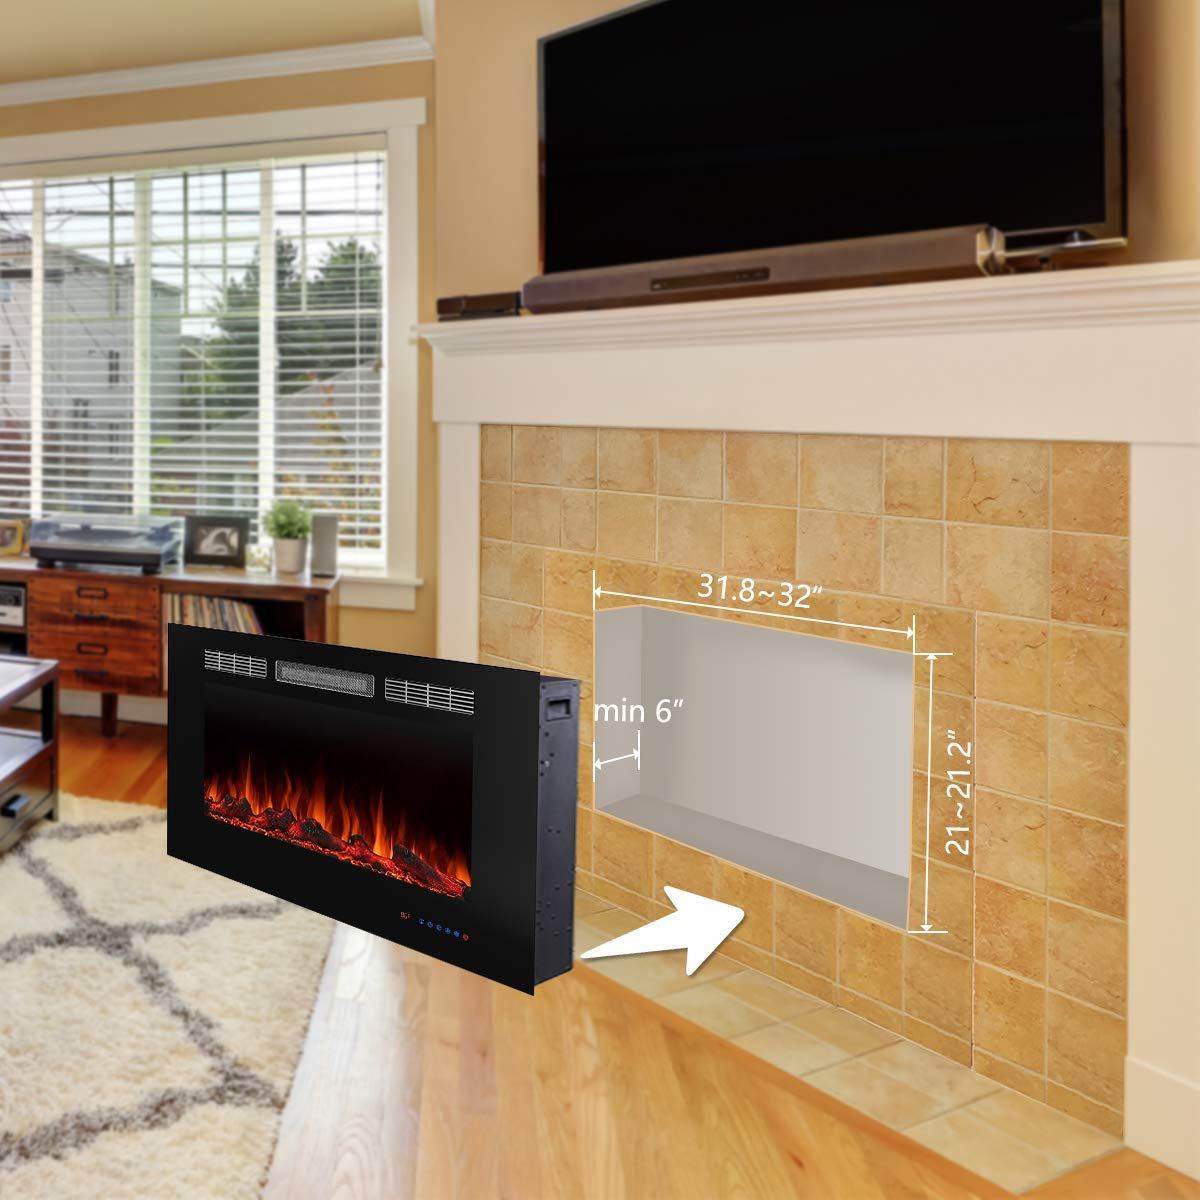 Valuxhome 36 Electric Fireplace – in Wall Recessed – 750W 1500W Heater 62 F-86 F Thermostat with Timer – Touch Screen Remote Control – Logset Crystal Option – 3 Flame Colors – Black